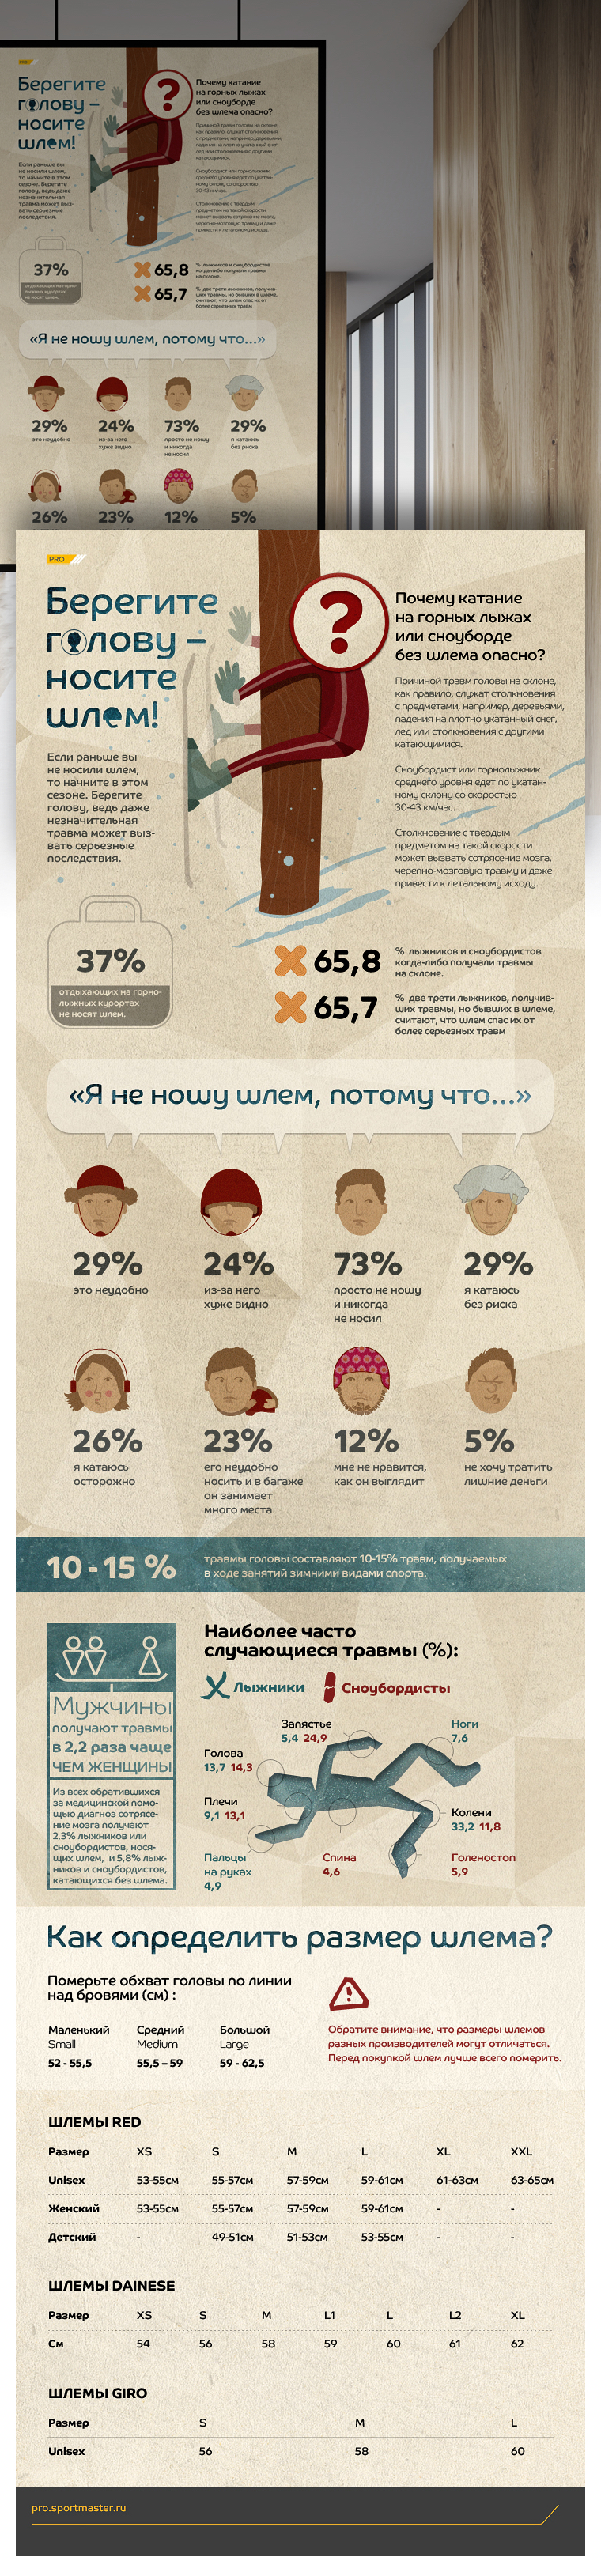 "Эскиз проекта Infographic poster ""Take care of your head - wear a helmet!"""